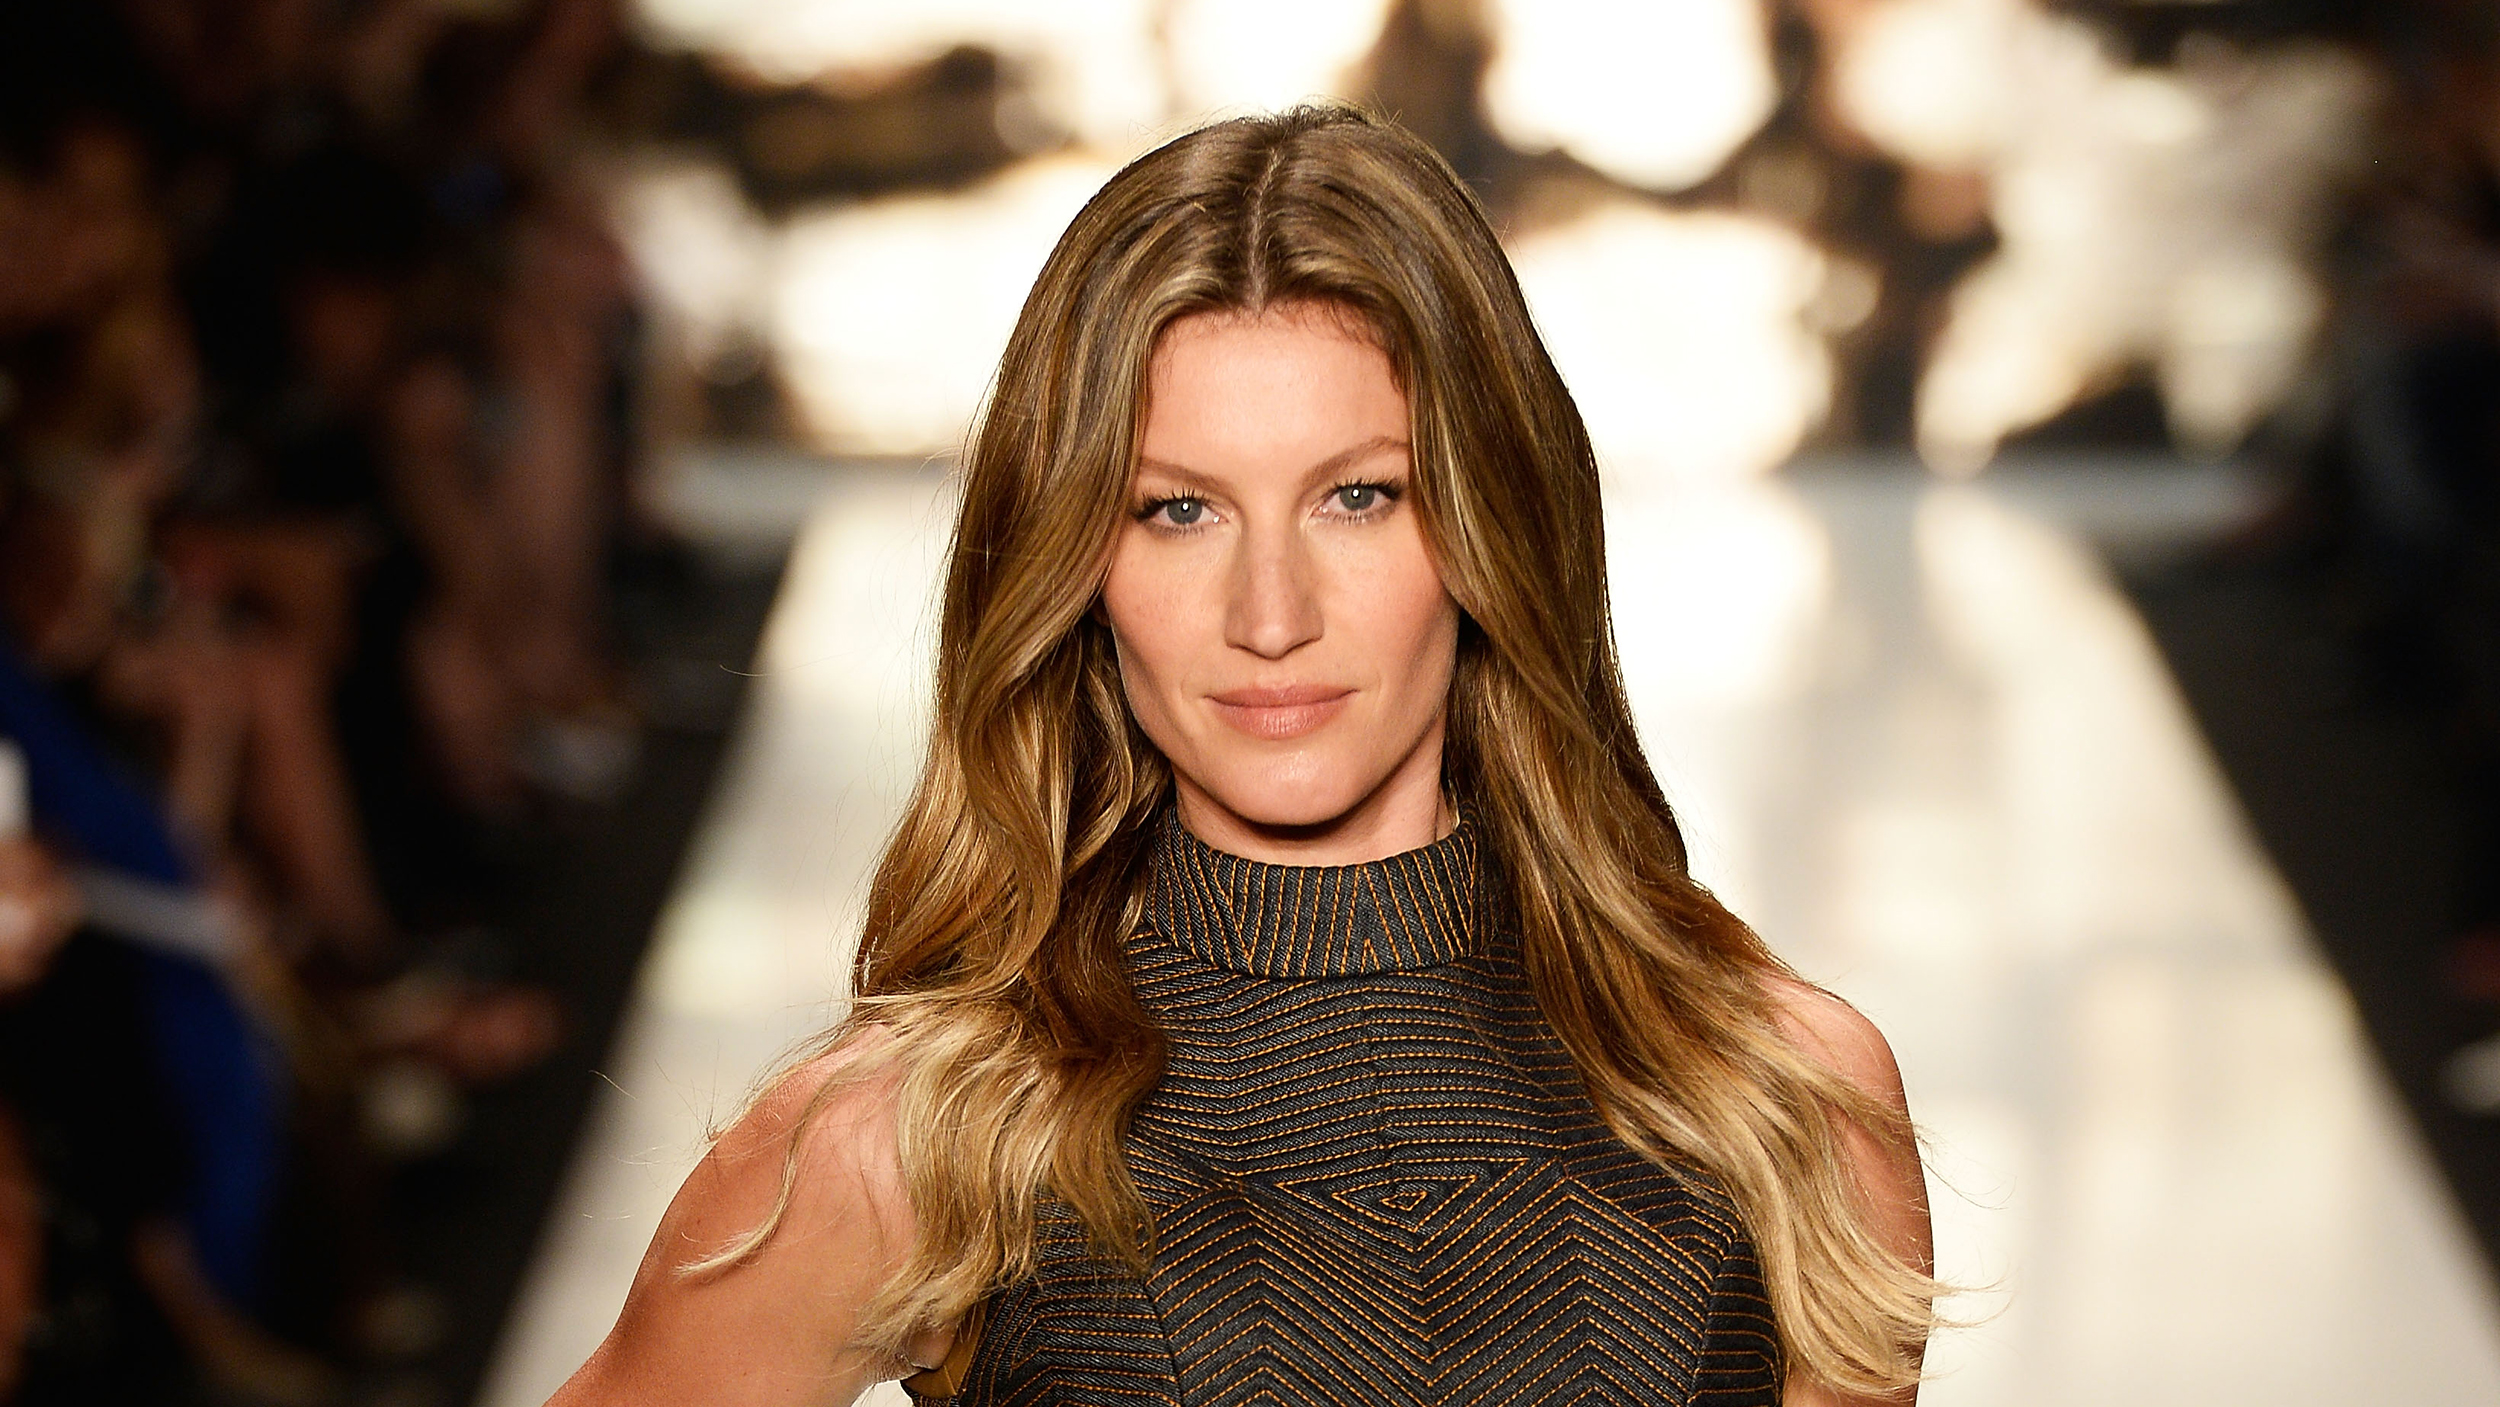 SAO PAULO, BRAZIL - NOVEMBER 04: Gisele Bündchen walks the runway at the Colcci fashion show during Sao Paulo Fashion Week Winter 2015 at Parque Candido Portinari on November 4, 2014 in Sao Paulo, Brazil. (Photo by Studio Fernanda Calfat/Getty Images)